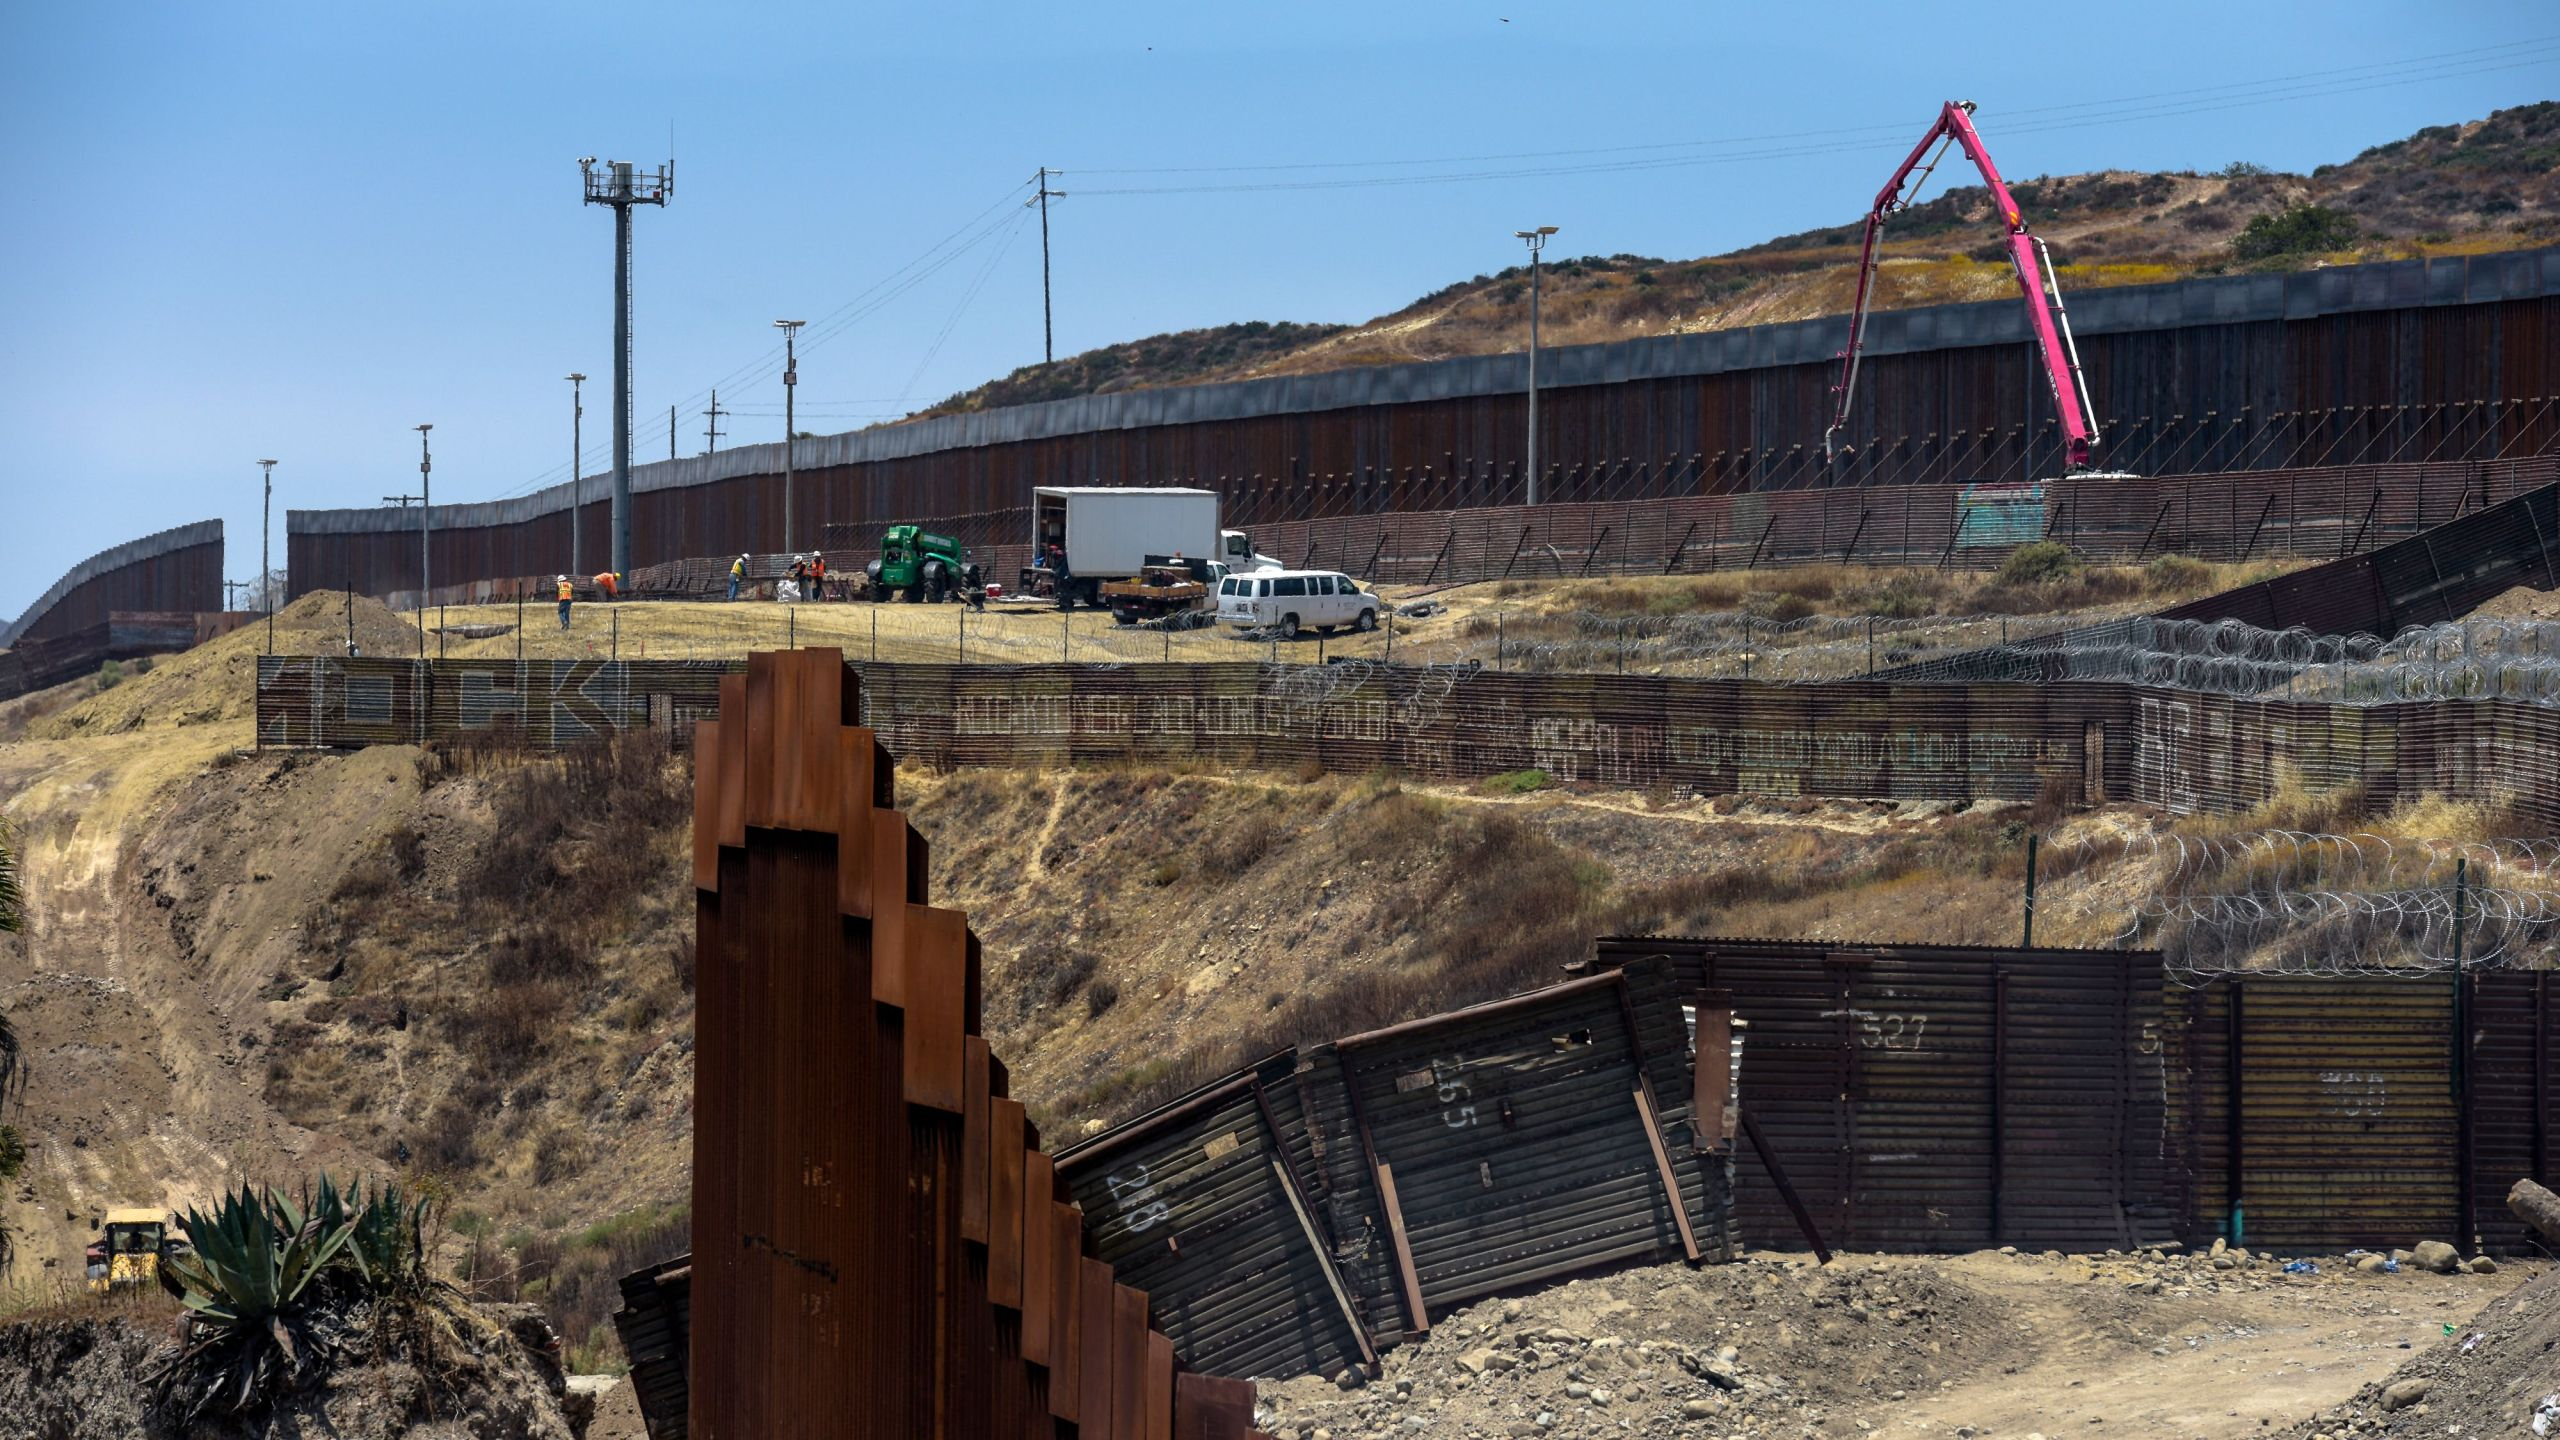 View of the Mexico-U.S. border wall on June 18, 2019, in Tijuana. (Credit: Agustin Paullier/AFP)